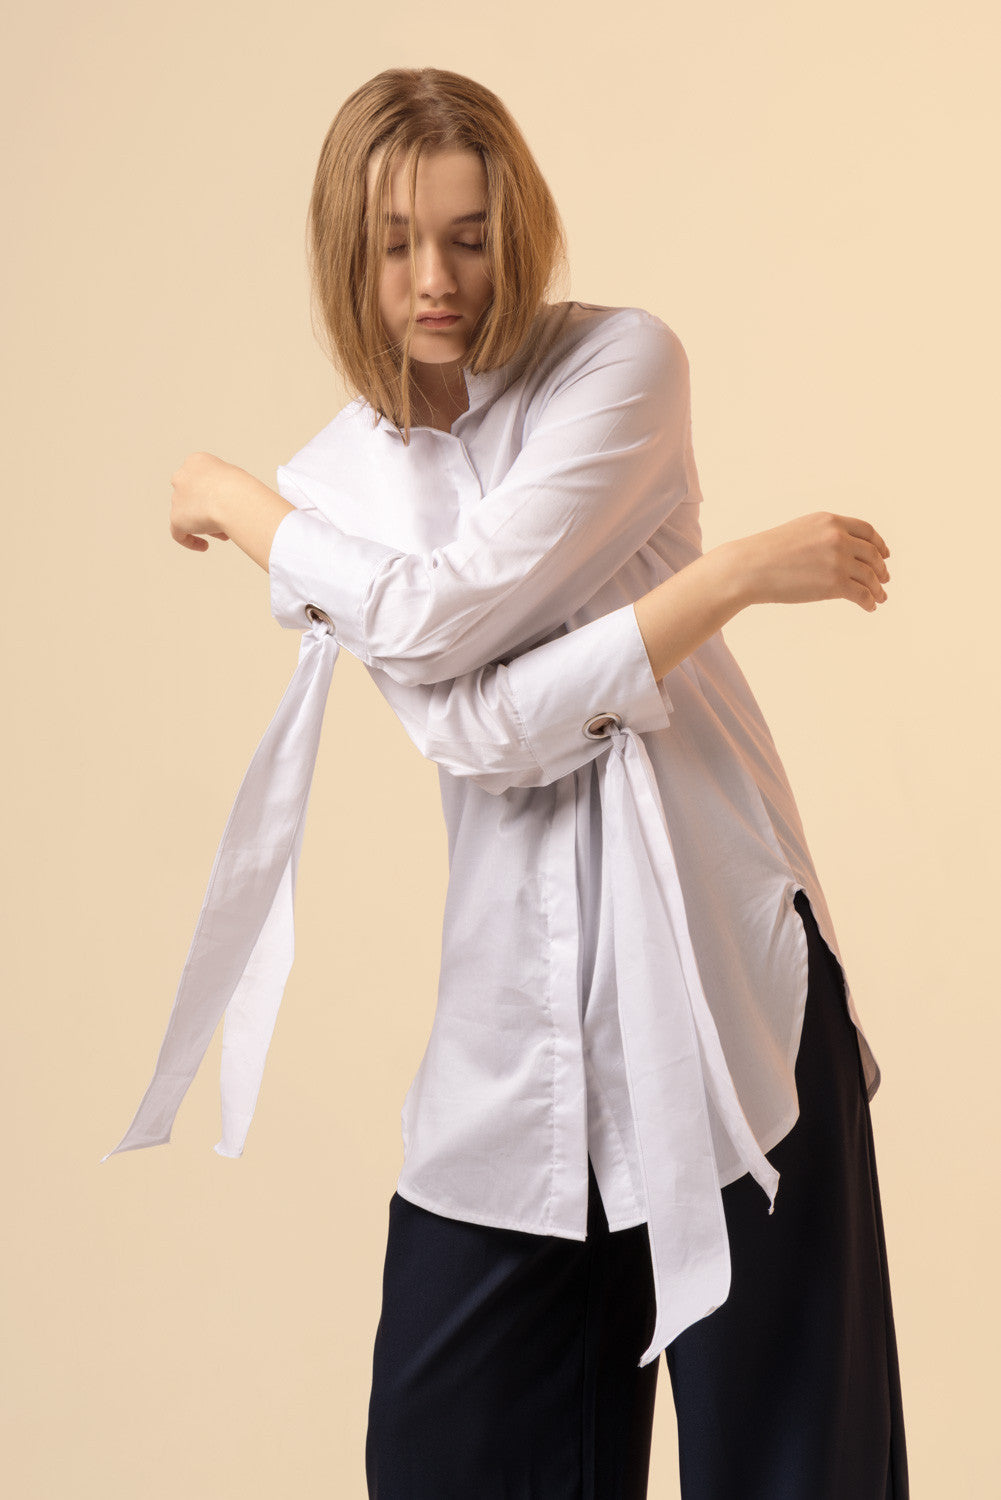 Bow Tie Sleeved White Blouse